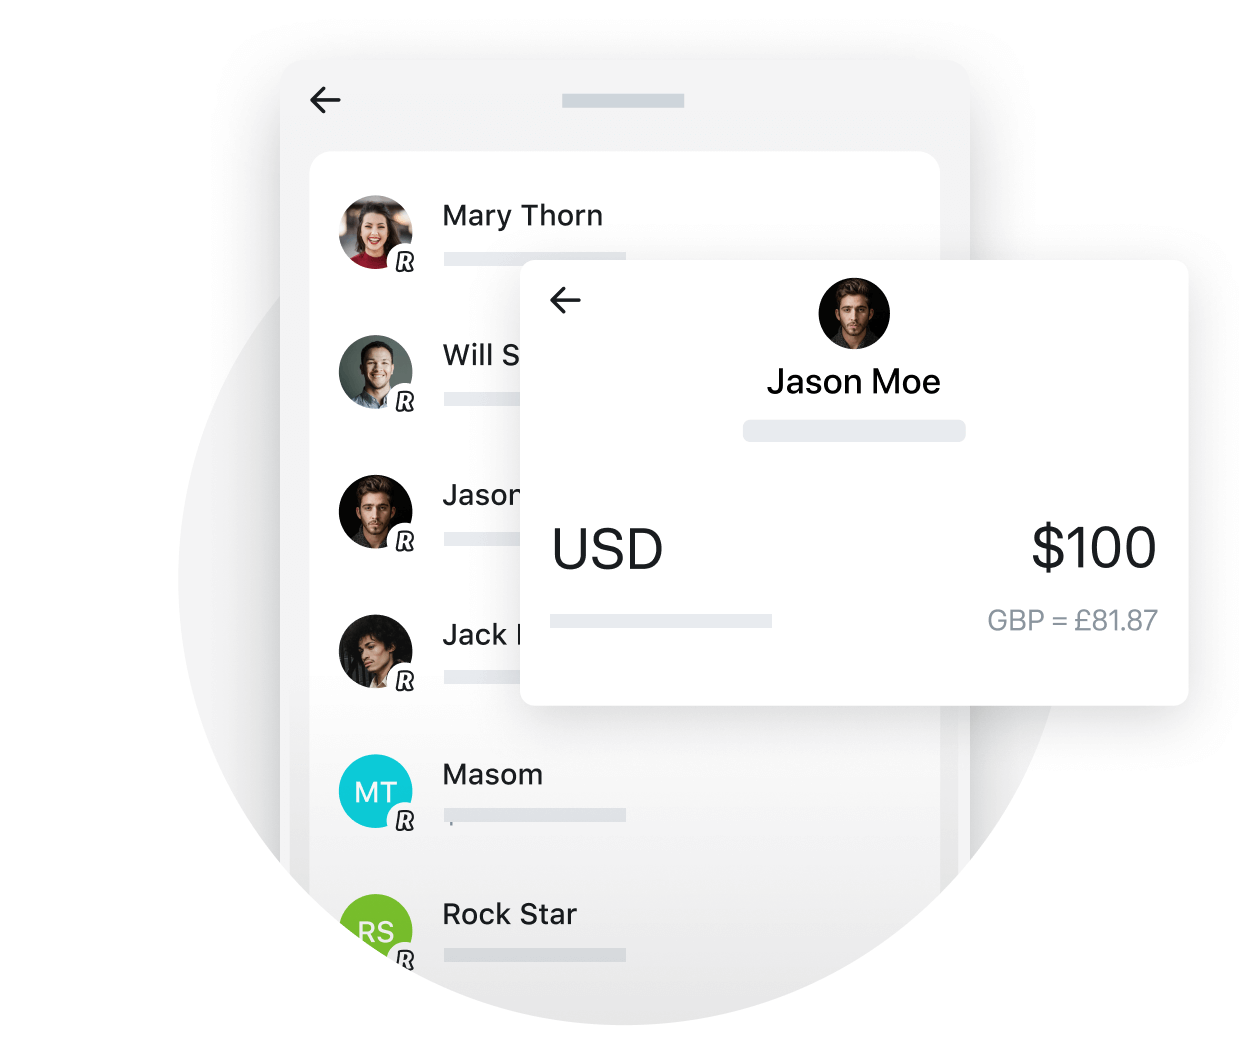 Free and instant transfers to Revolut users in 30+ countries